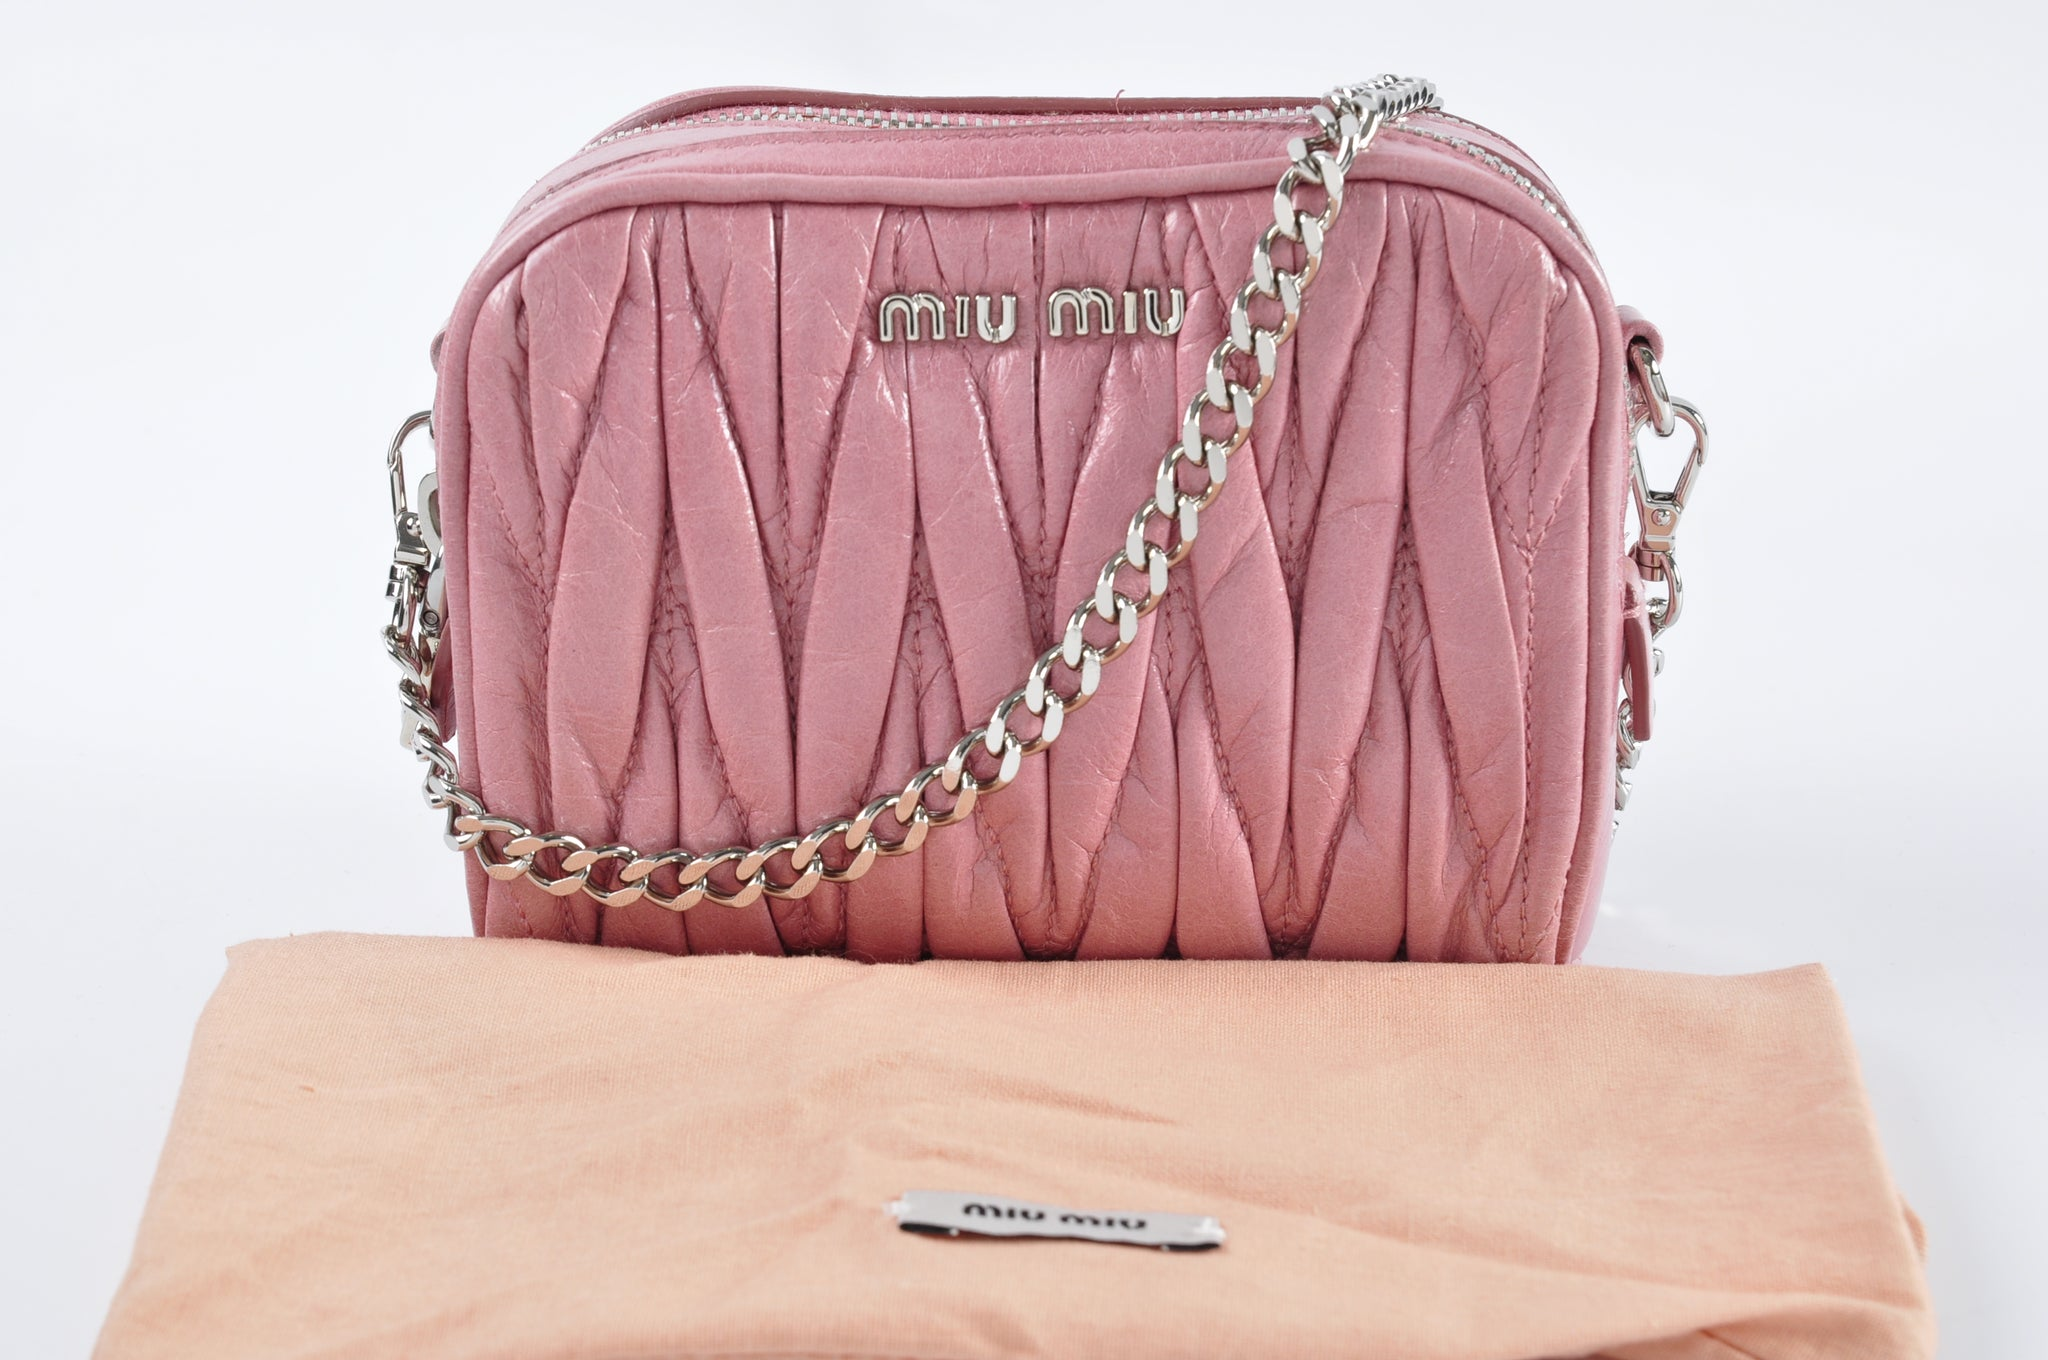 573cd590088d Miu Miu Women s Pink Matelassé Leather Mini Crossbody Bag SHW – Glampot